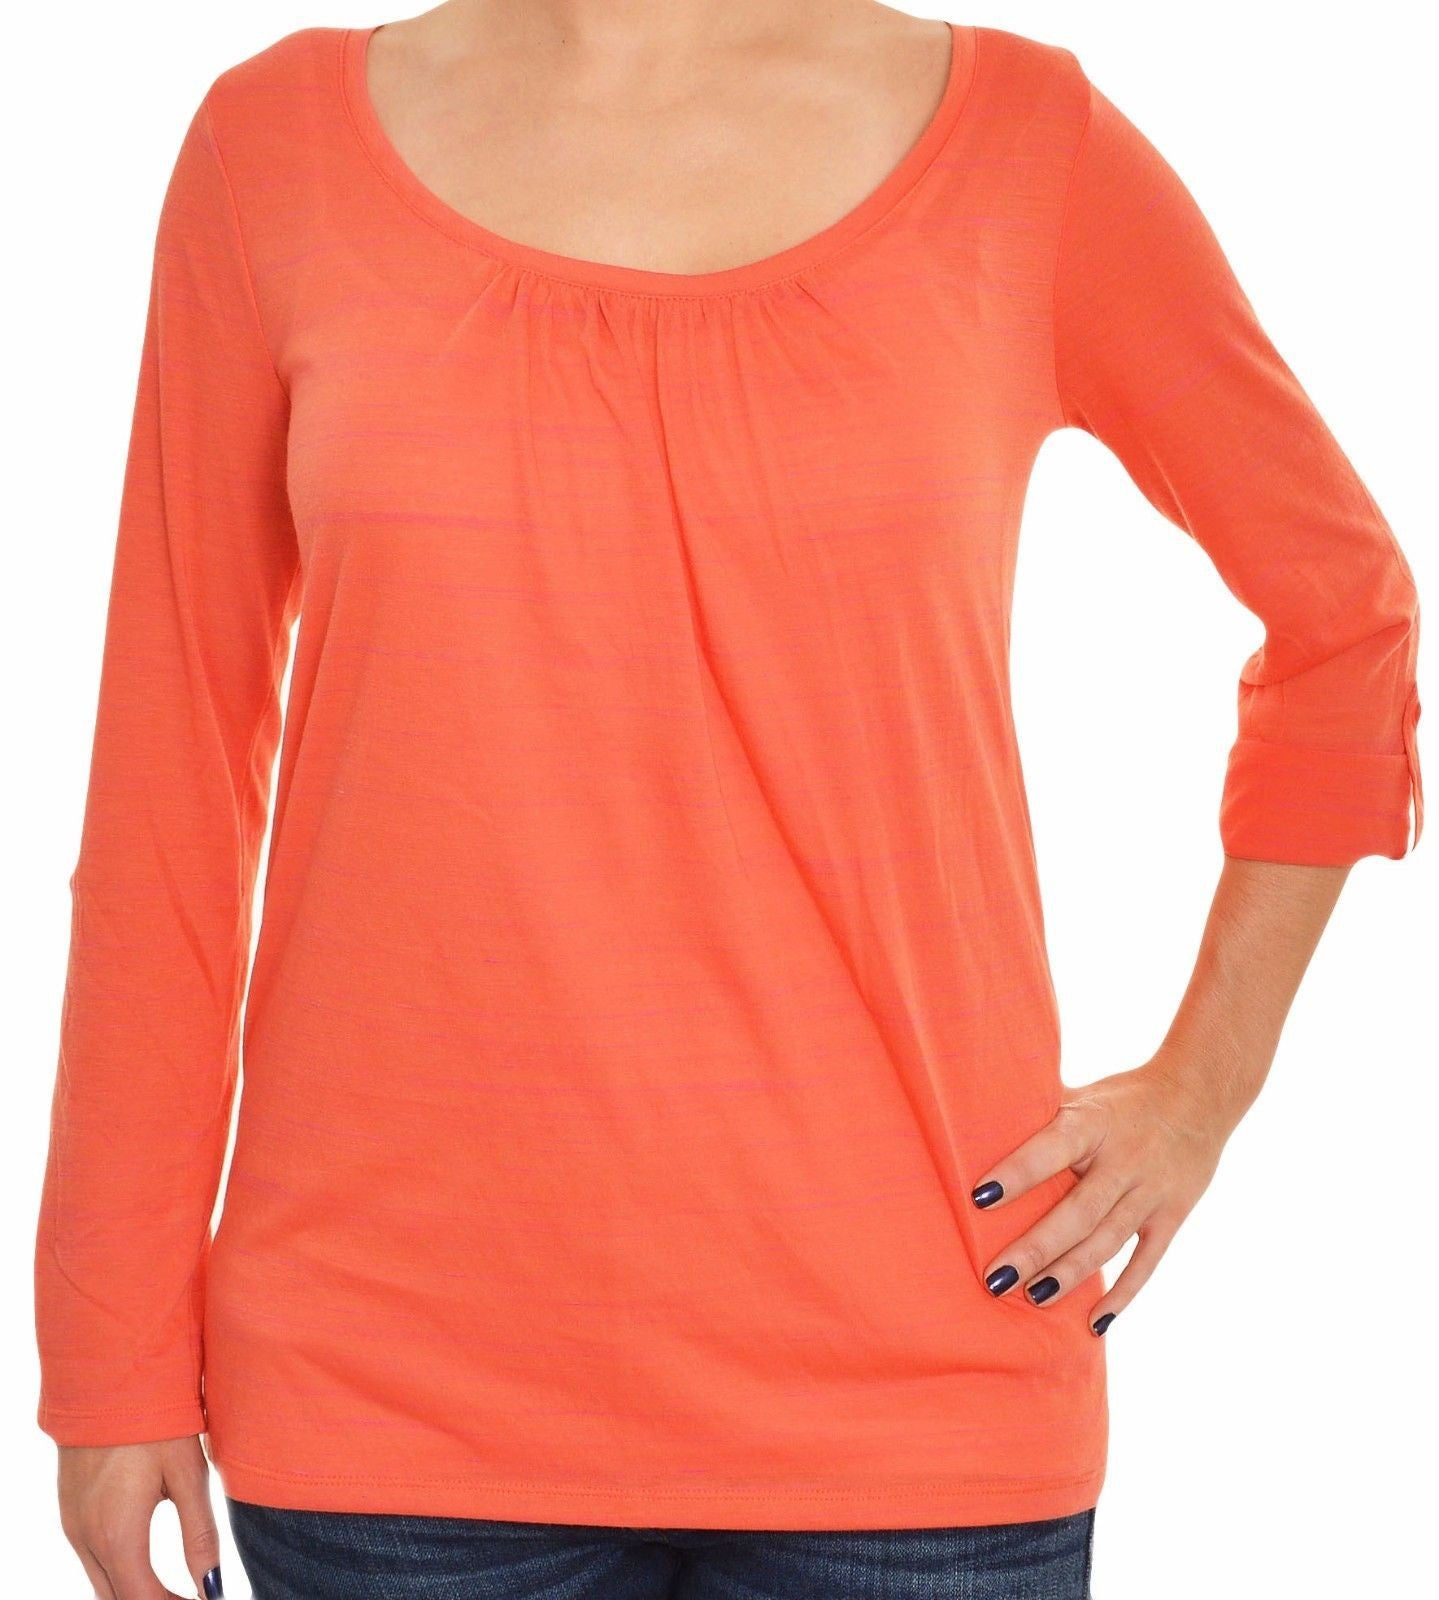 Ann Taylor Roll Tab Lightweight TShirt (Orange),Shirts,Ann Taylor - Discount Divas